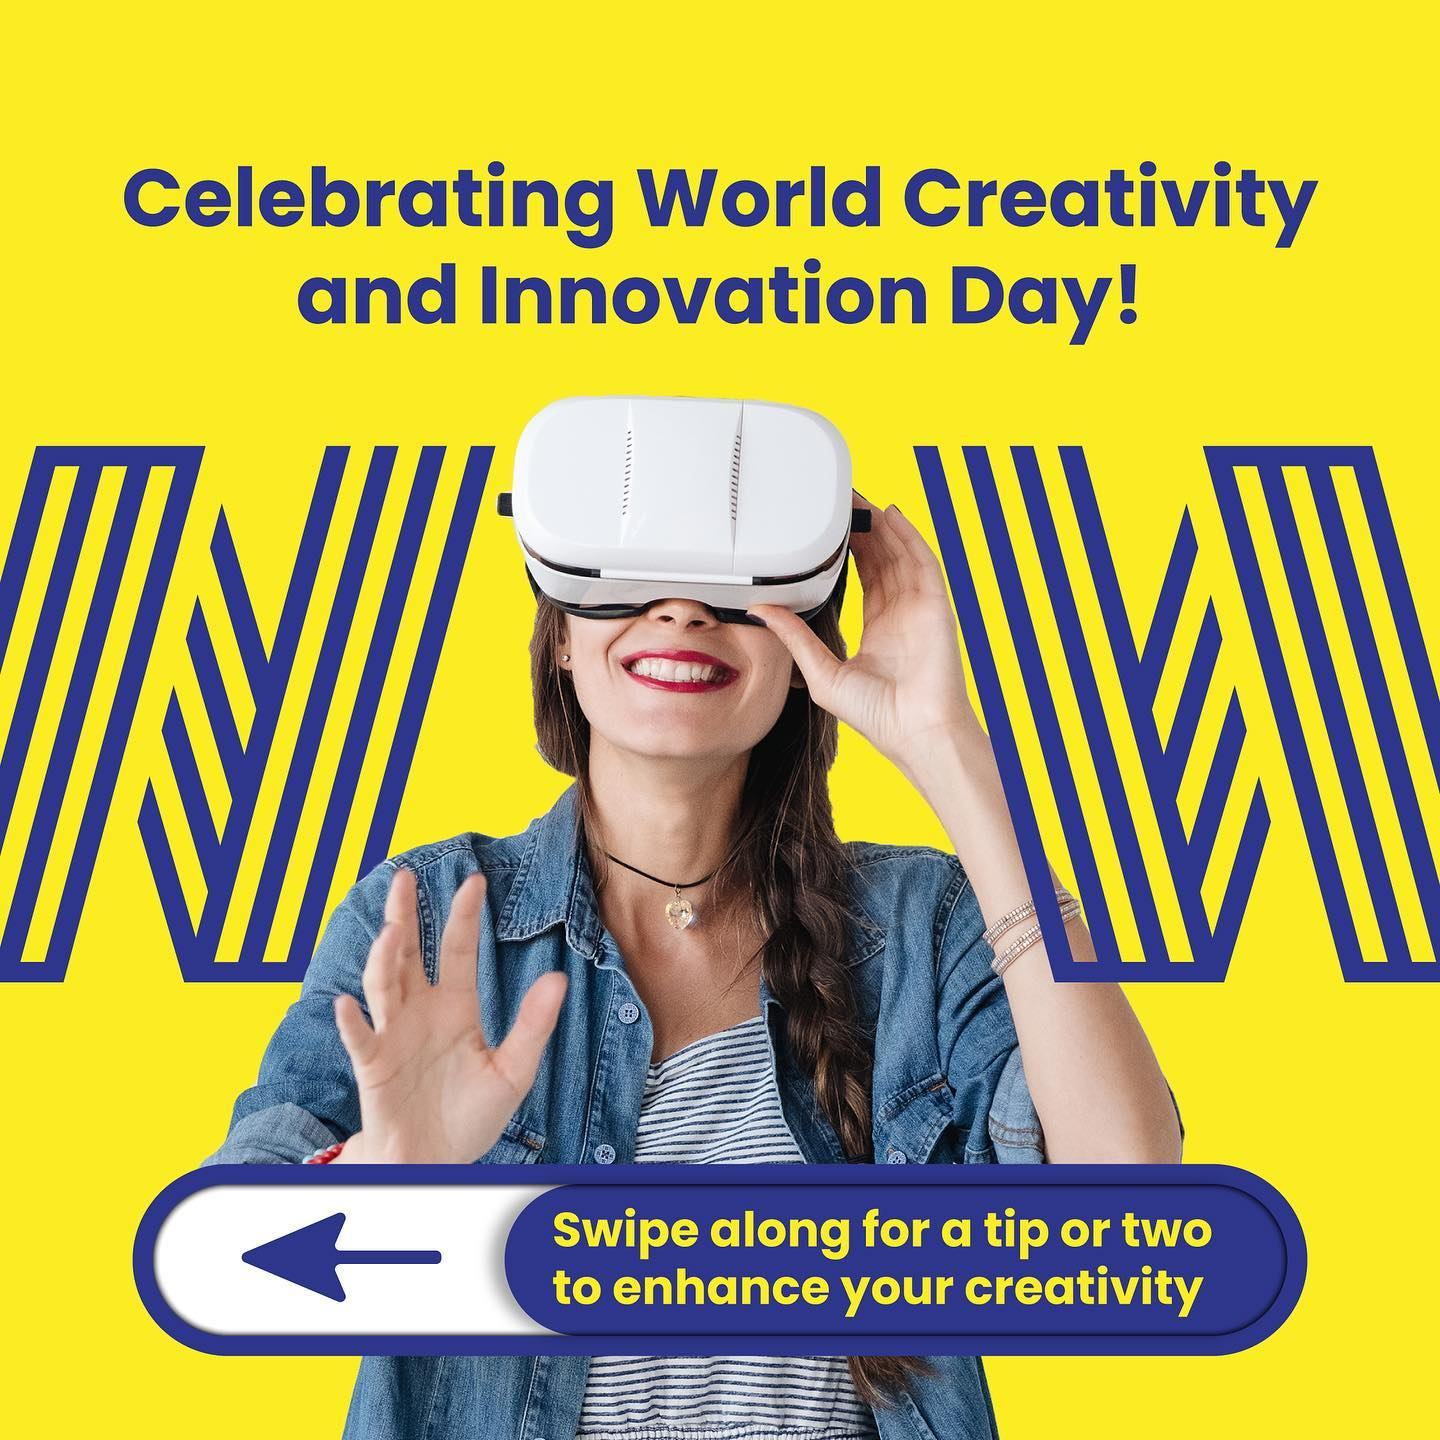 Happy World Creativity and Innovation Day!Take chancesDare to failBe inspired and inspiring. Today seems like a pretty good day to start. Take a chance on that new role, here. https://wowrecruitment.com.au/contact-us-2/#RecruitmentHappy